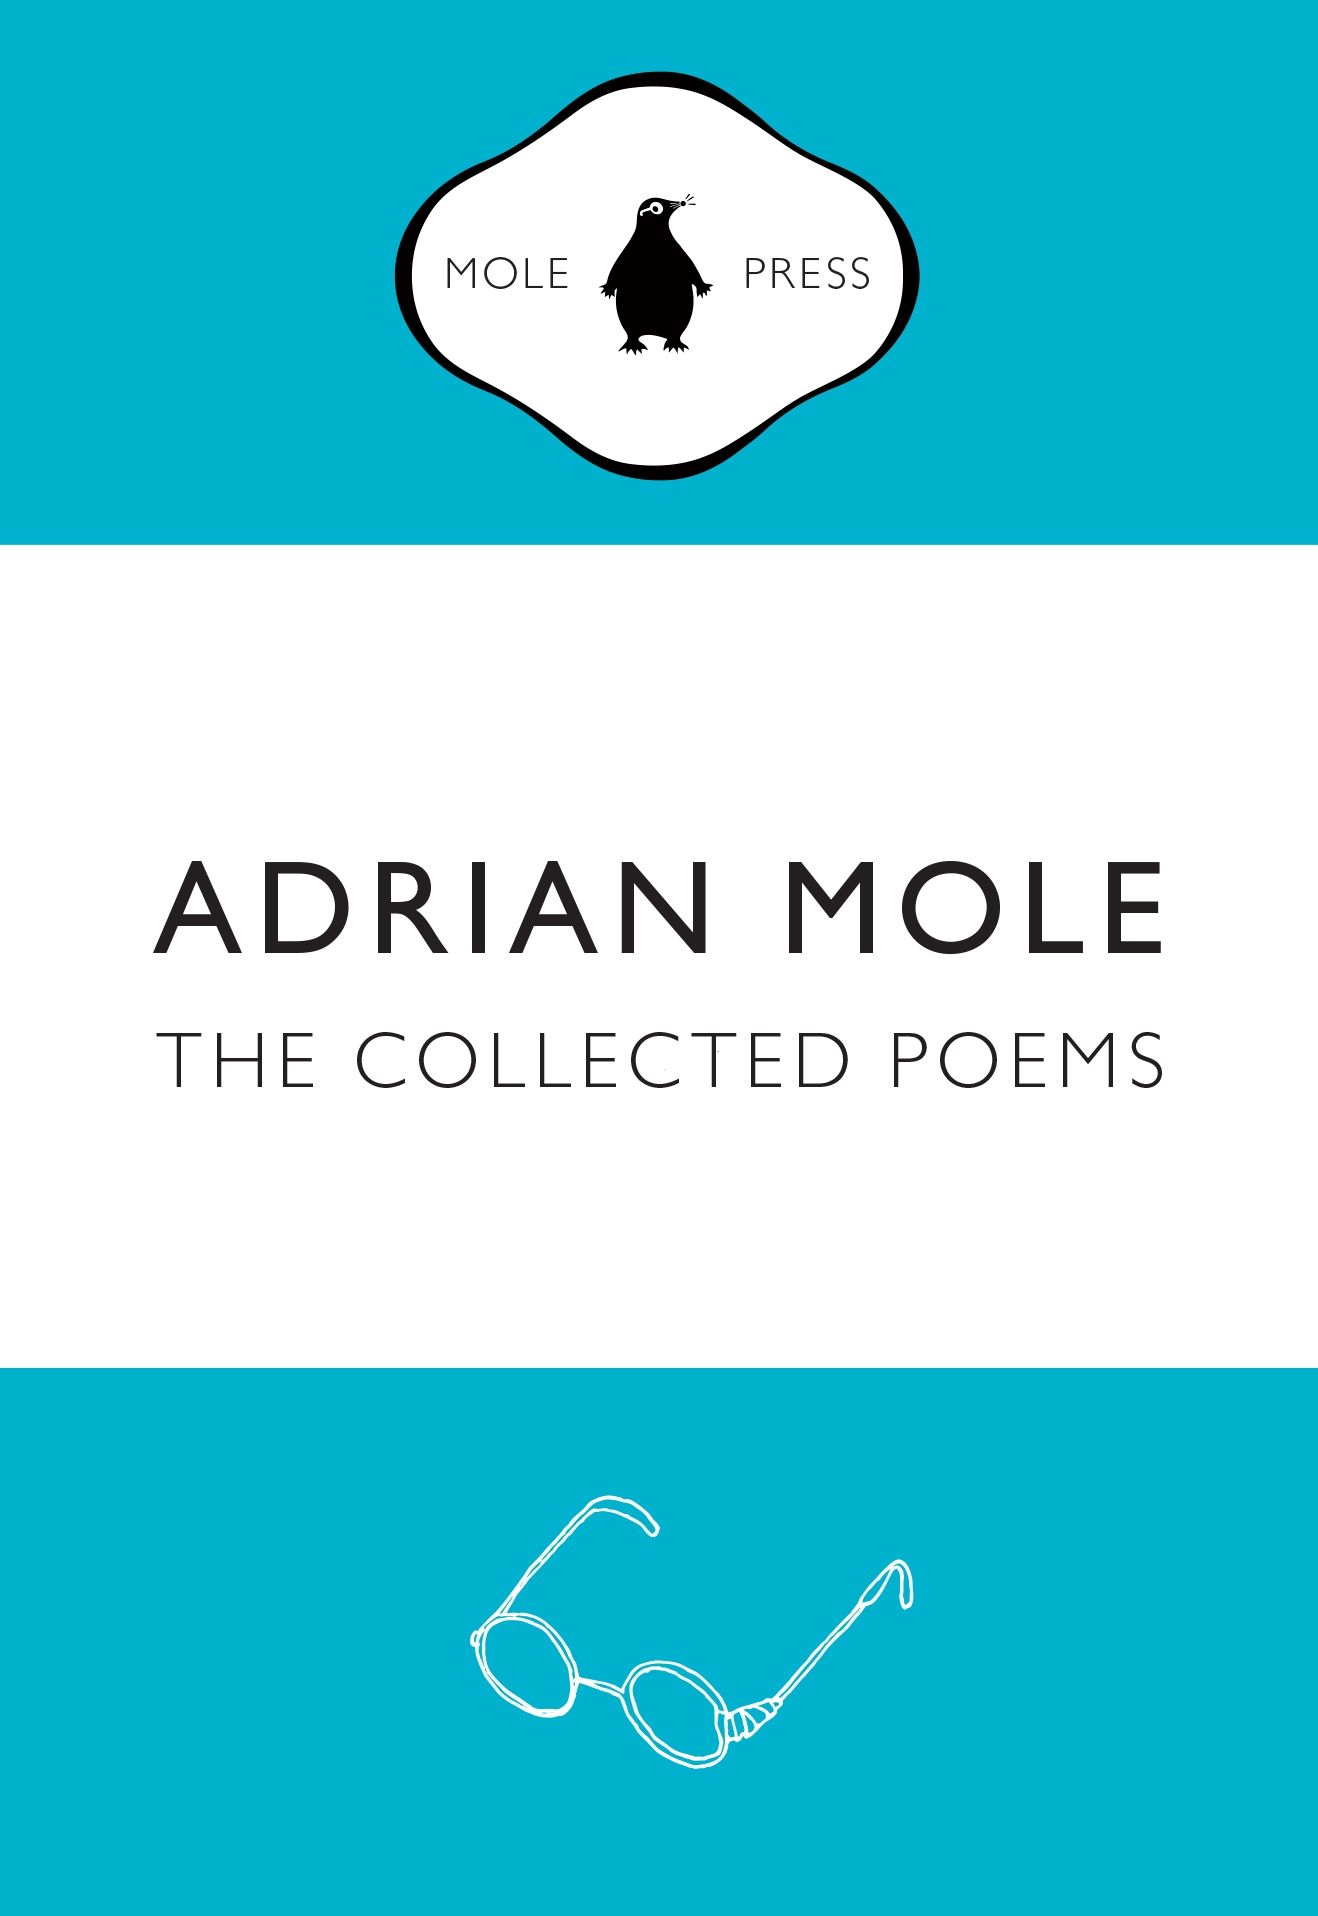 Adrian Mole The Collected Poems Awordfromjojo Poetry Adrianmole Adrian Mole Collection Of Poems Poems